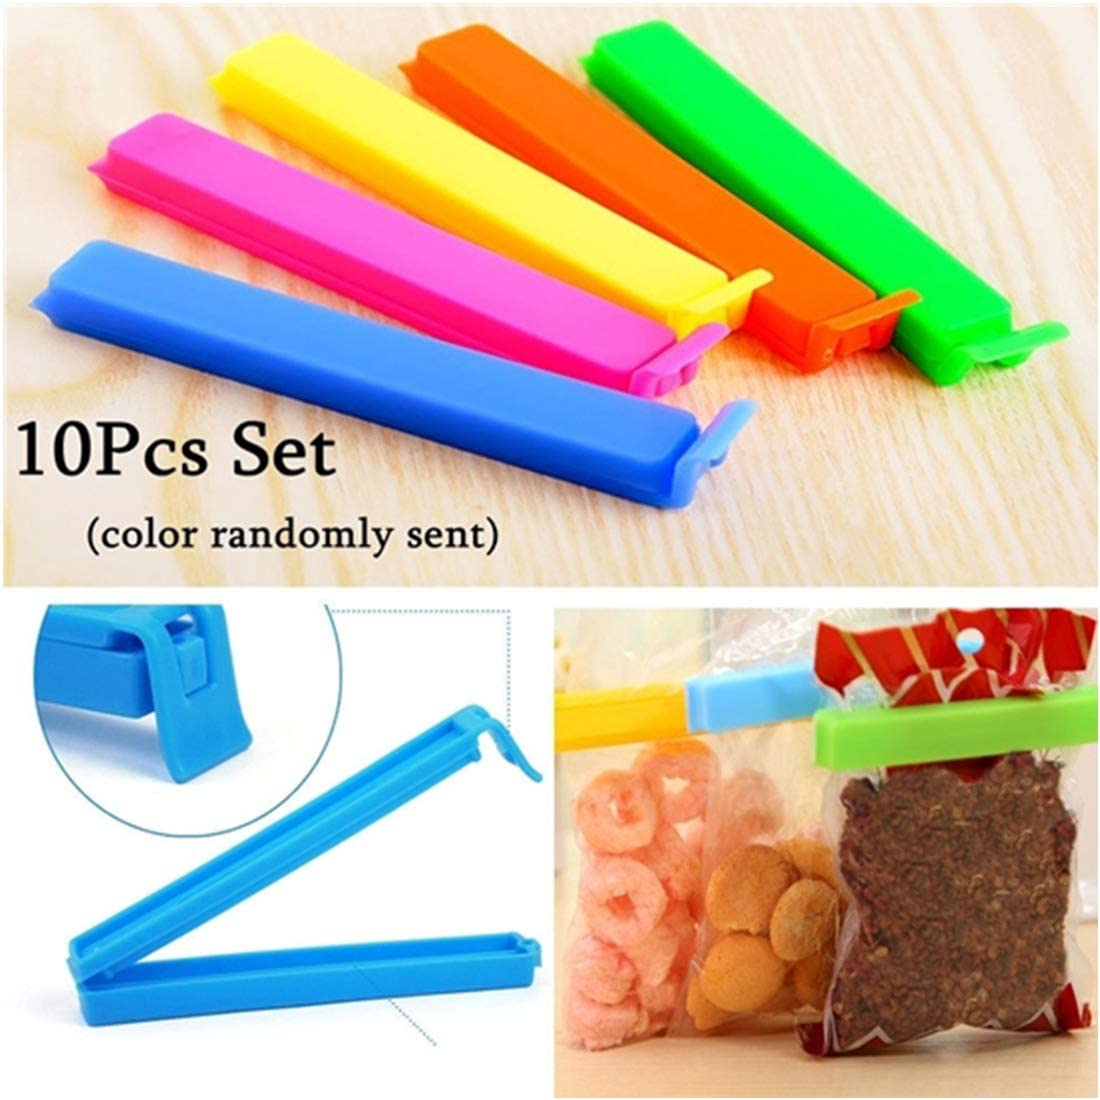 Kitchen Storage Food Snack Seal Sealing Bag Clips Sealer Clamp Plastic Tool 30x